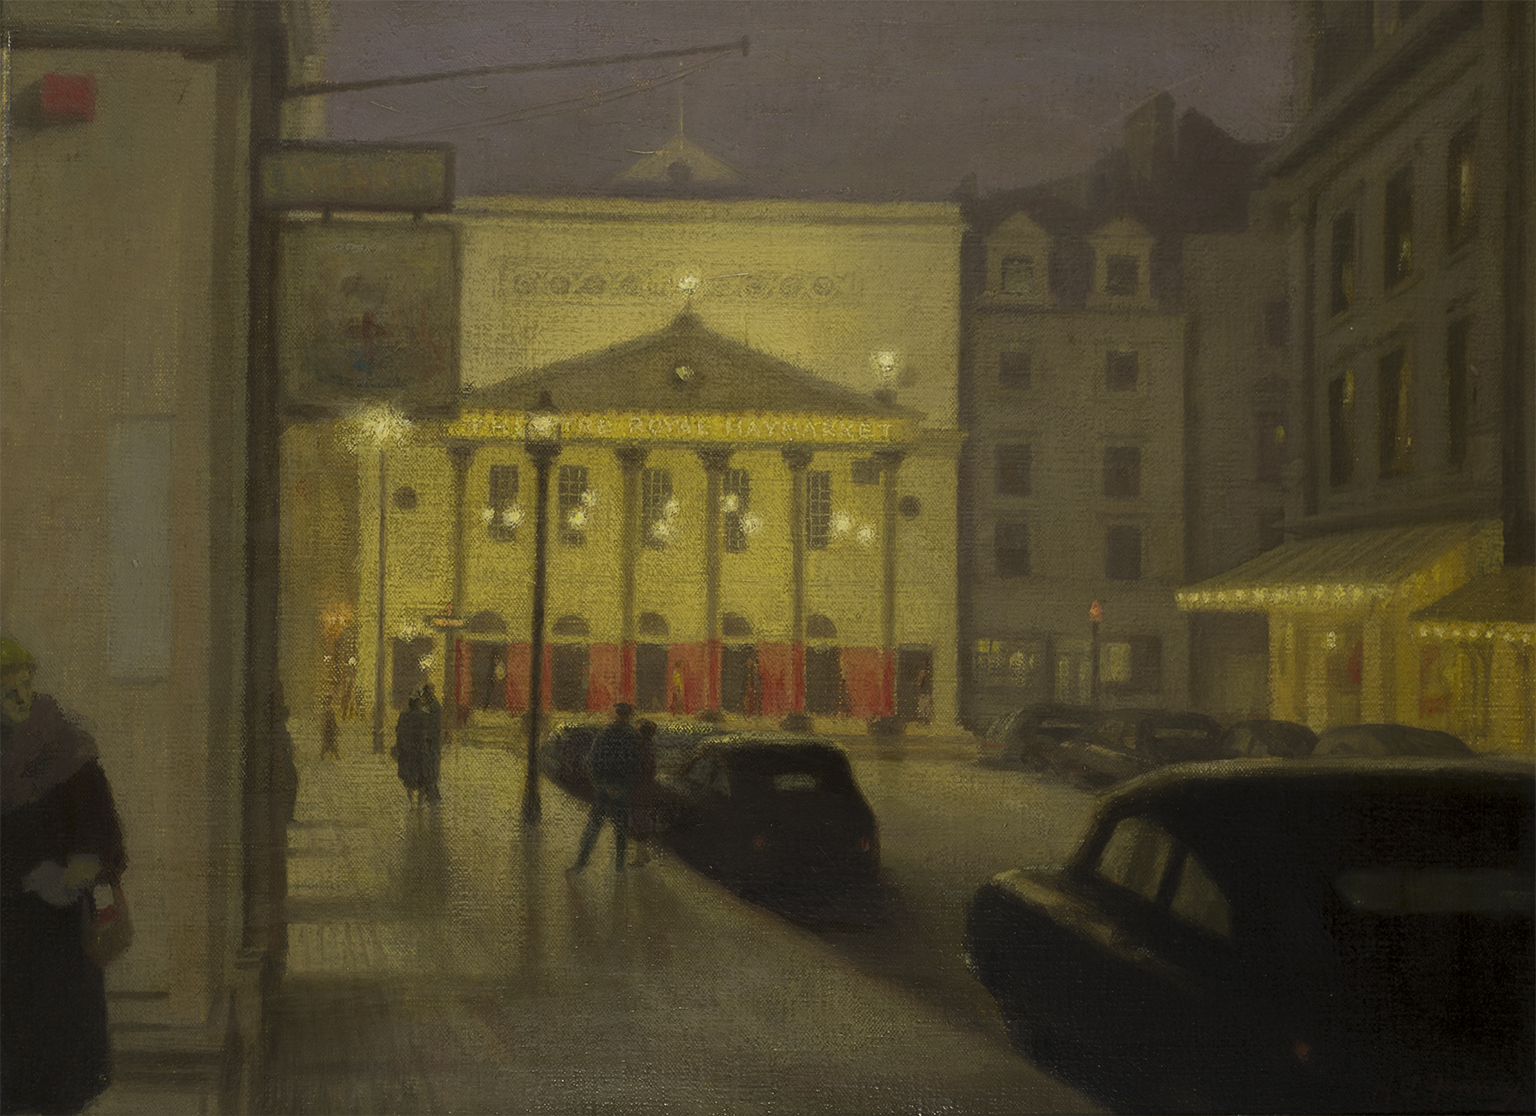 Hubert Arthur Finney (1905-1991), Theatre Royal Haymarket by Night, signed, titled to reverse, Oil on canvas, 40.5 x 30